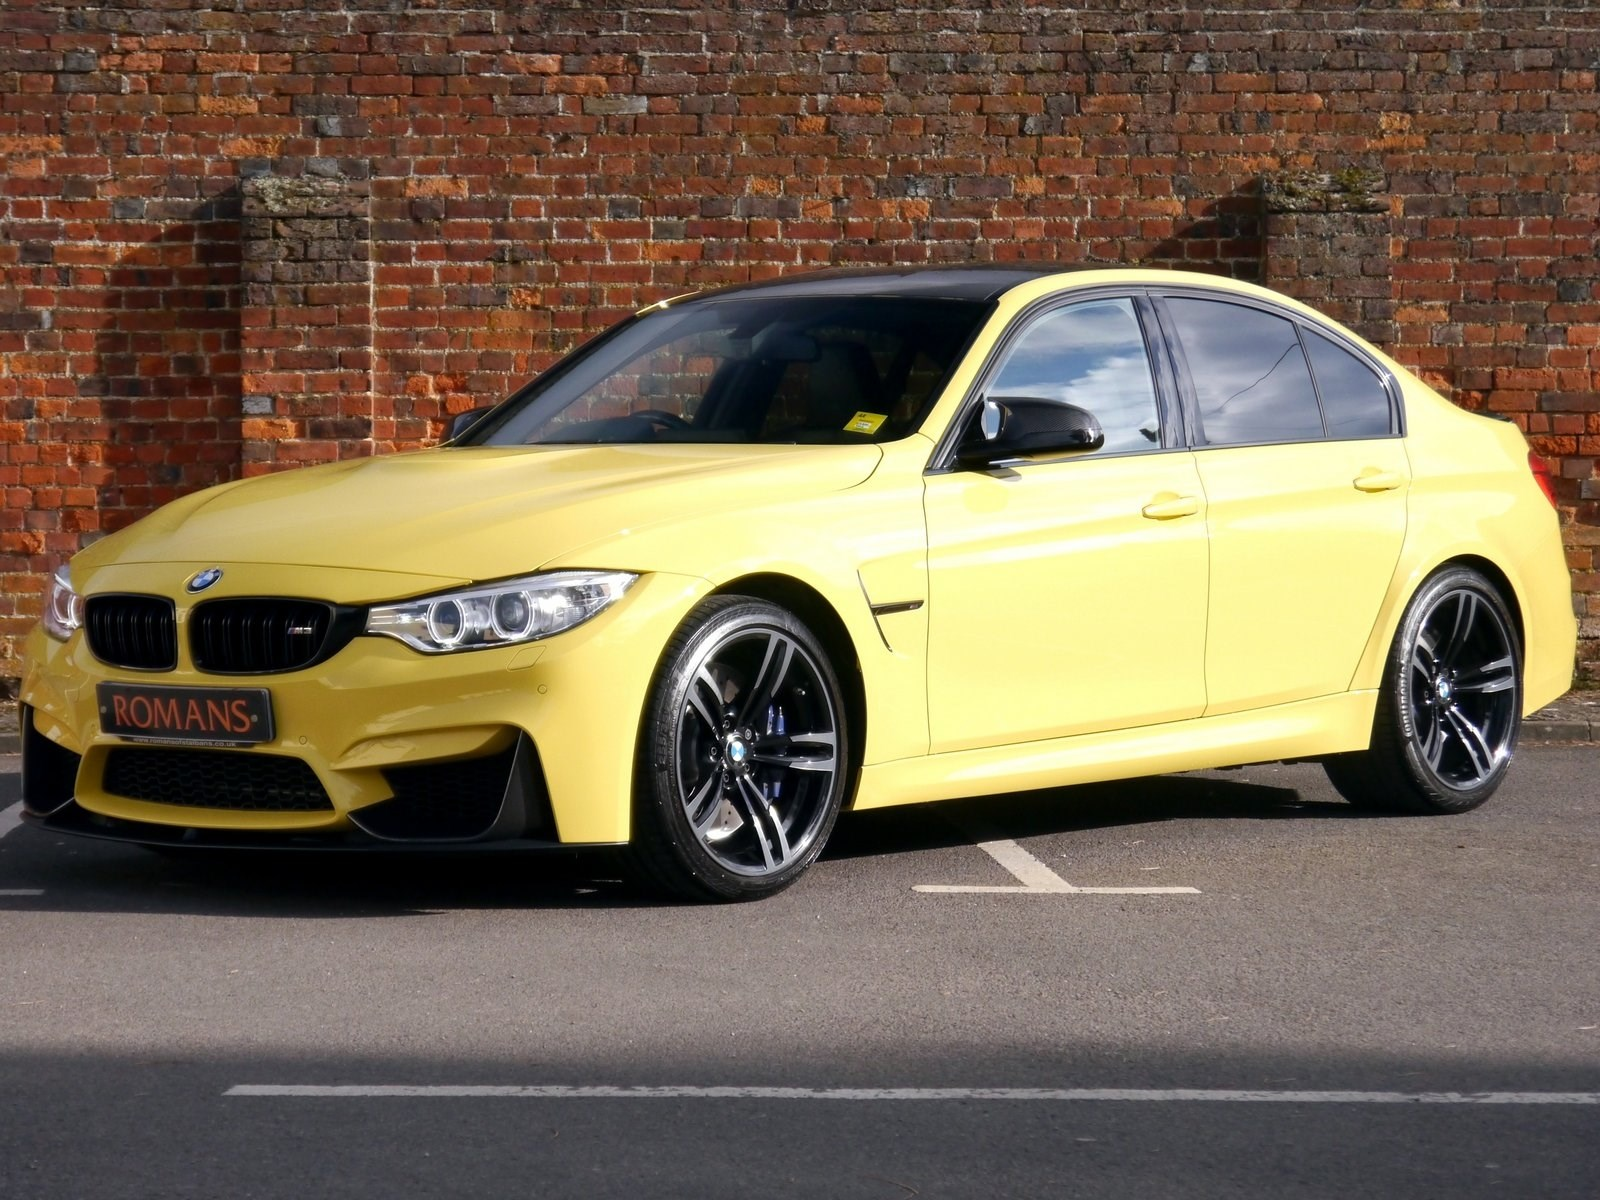 Aa Petrol Calculator >> BMW M3 3.0 M-DCT - Carbon - H/K Sound System - Extended Leather - Reversing Cam for Sale